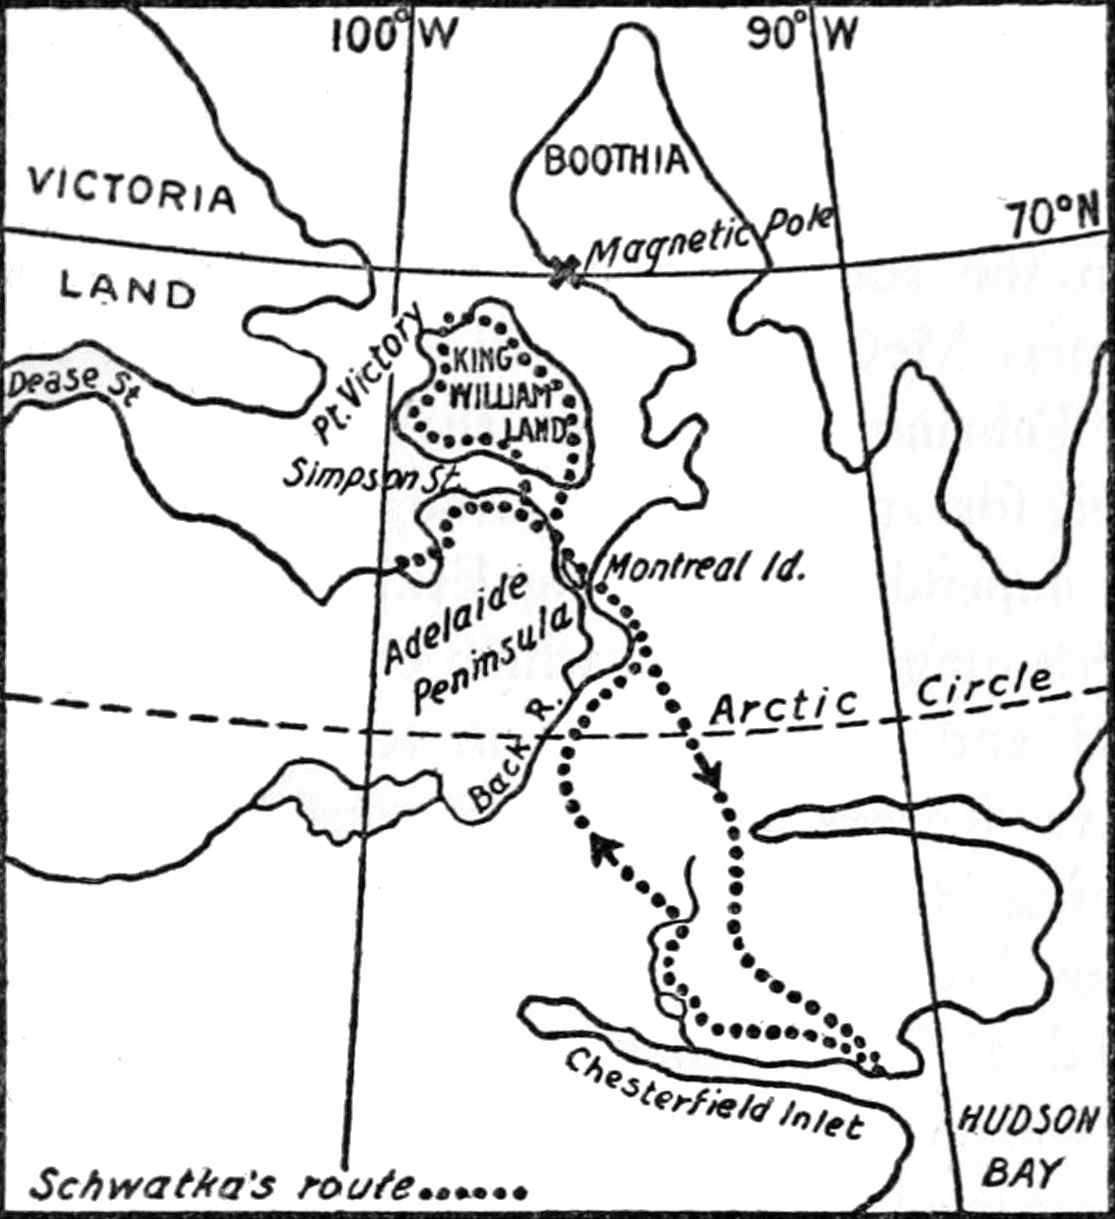 Schwa a's route to and from king william land